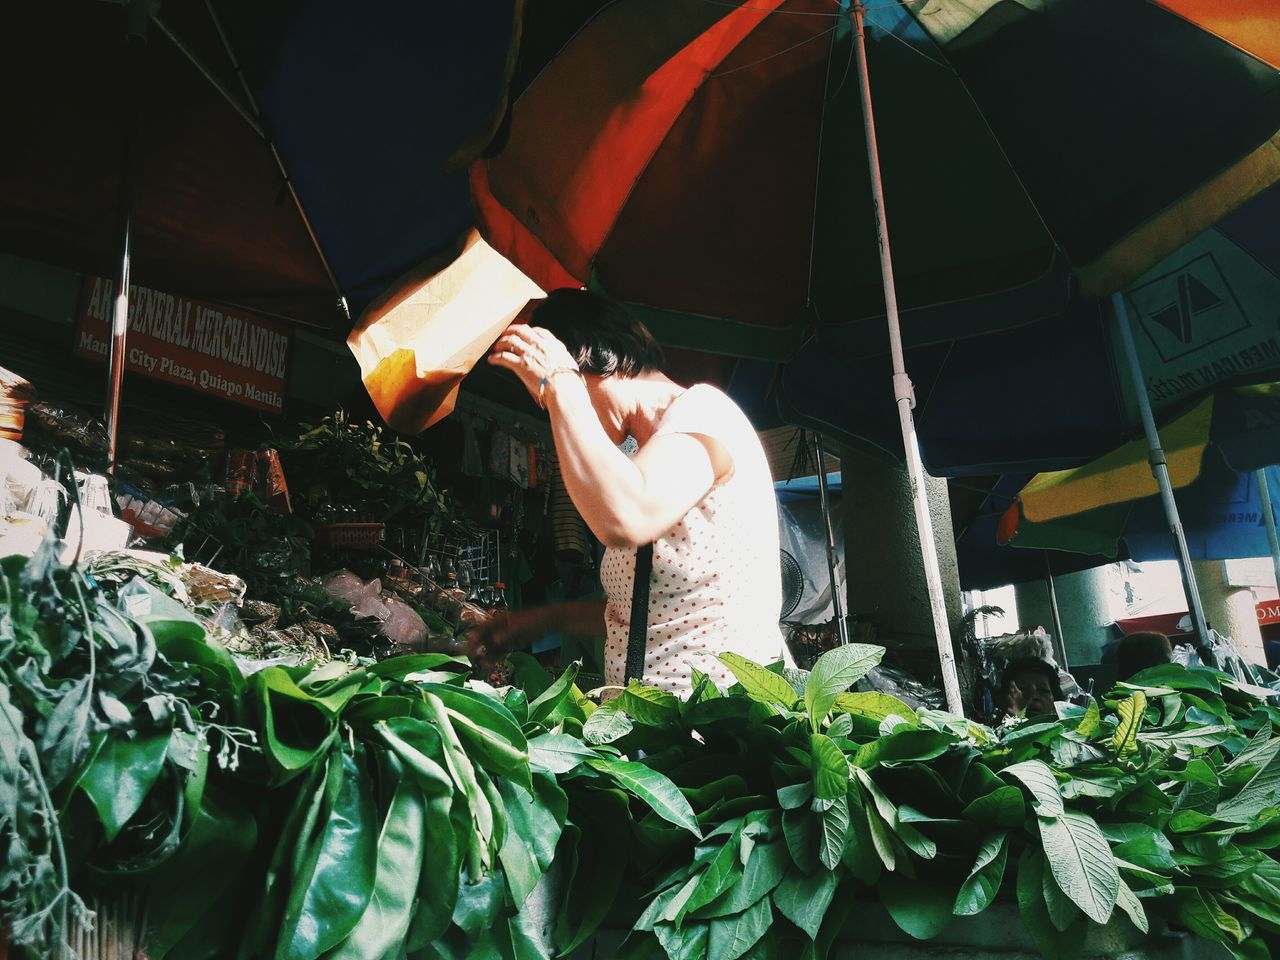 One Man Only Only Men Adult Adults Only One Person Hanging People Outdoors Men Occupation Day Freshness Morning EyeEmPHLaborDay2017 EyeEm Phillippines The Photojournalist - 2017 EyeEm Awards Market Stall